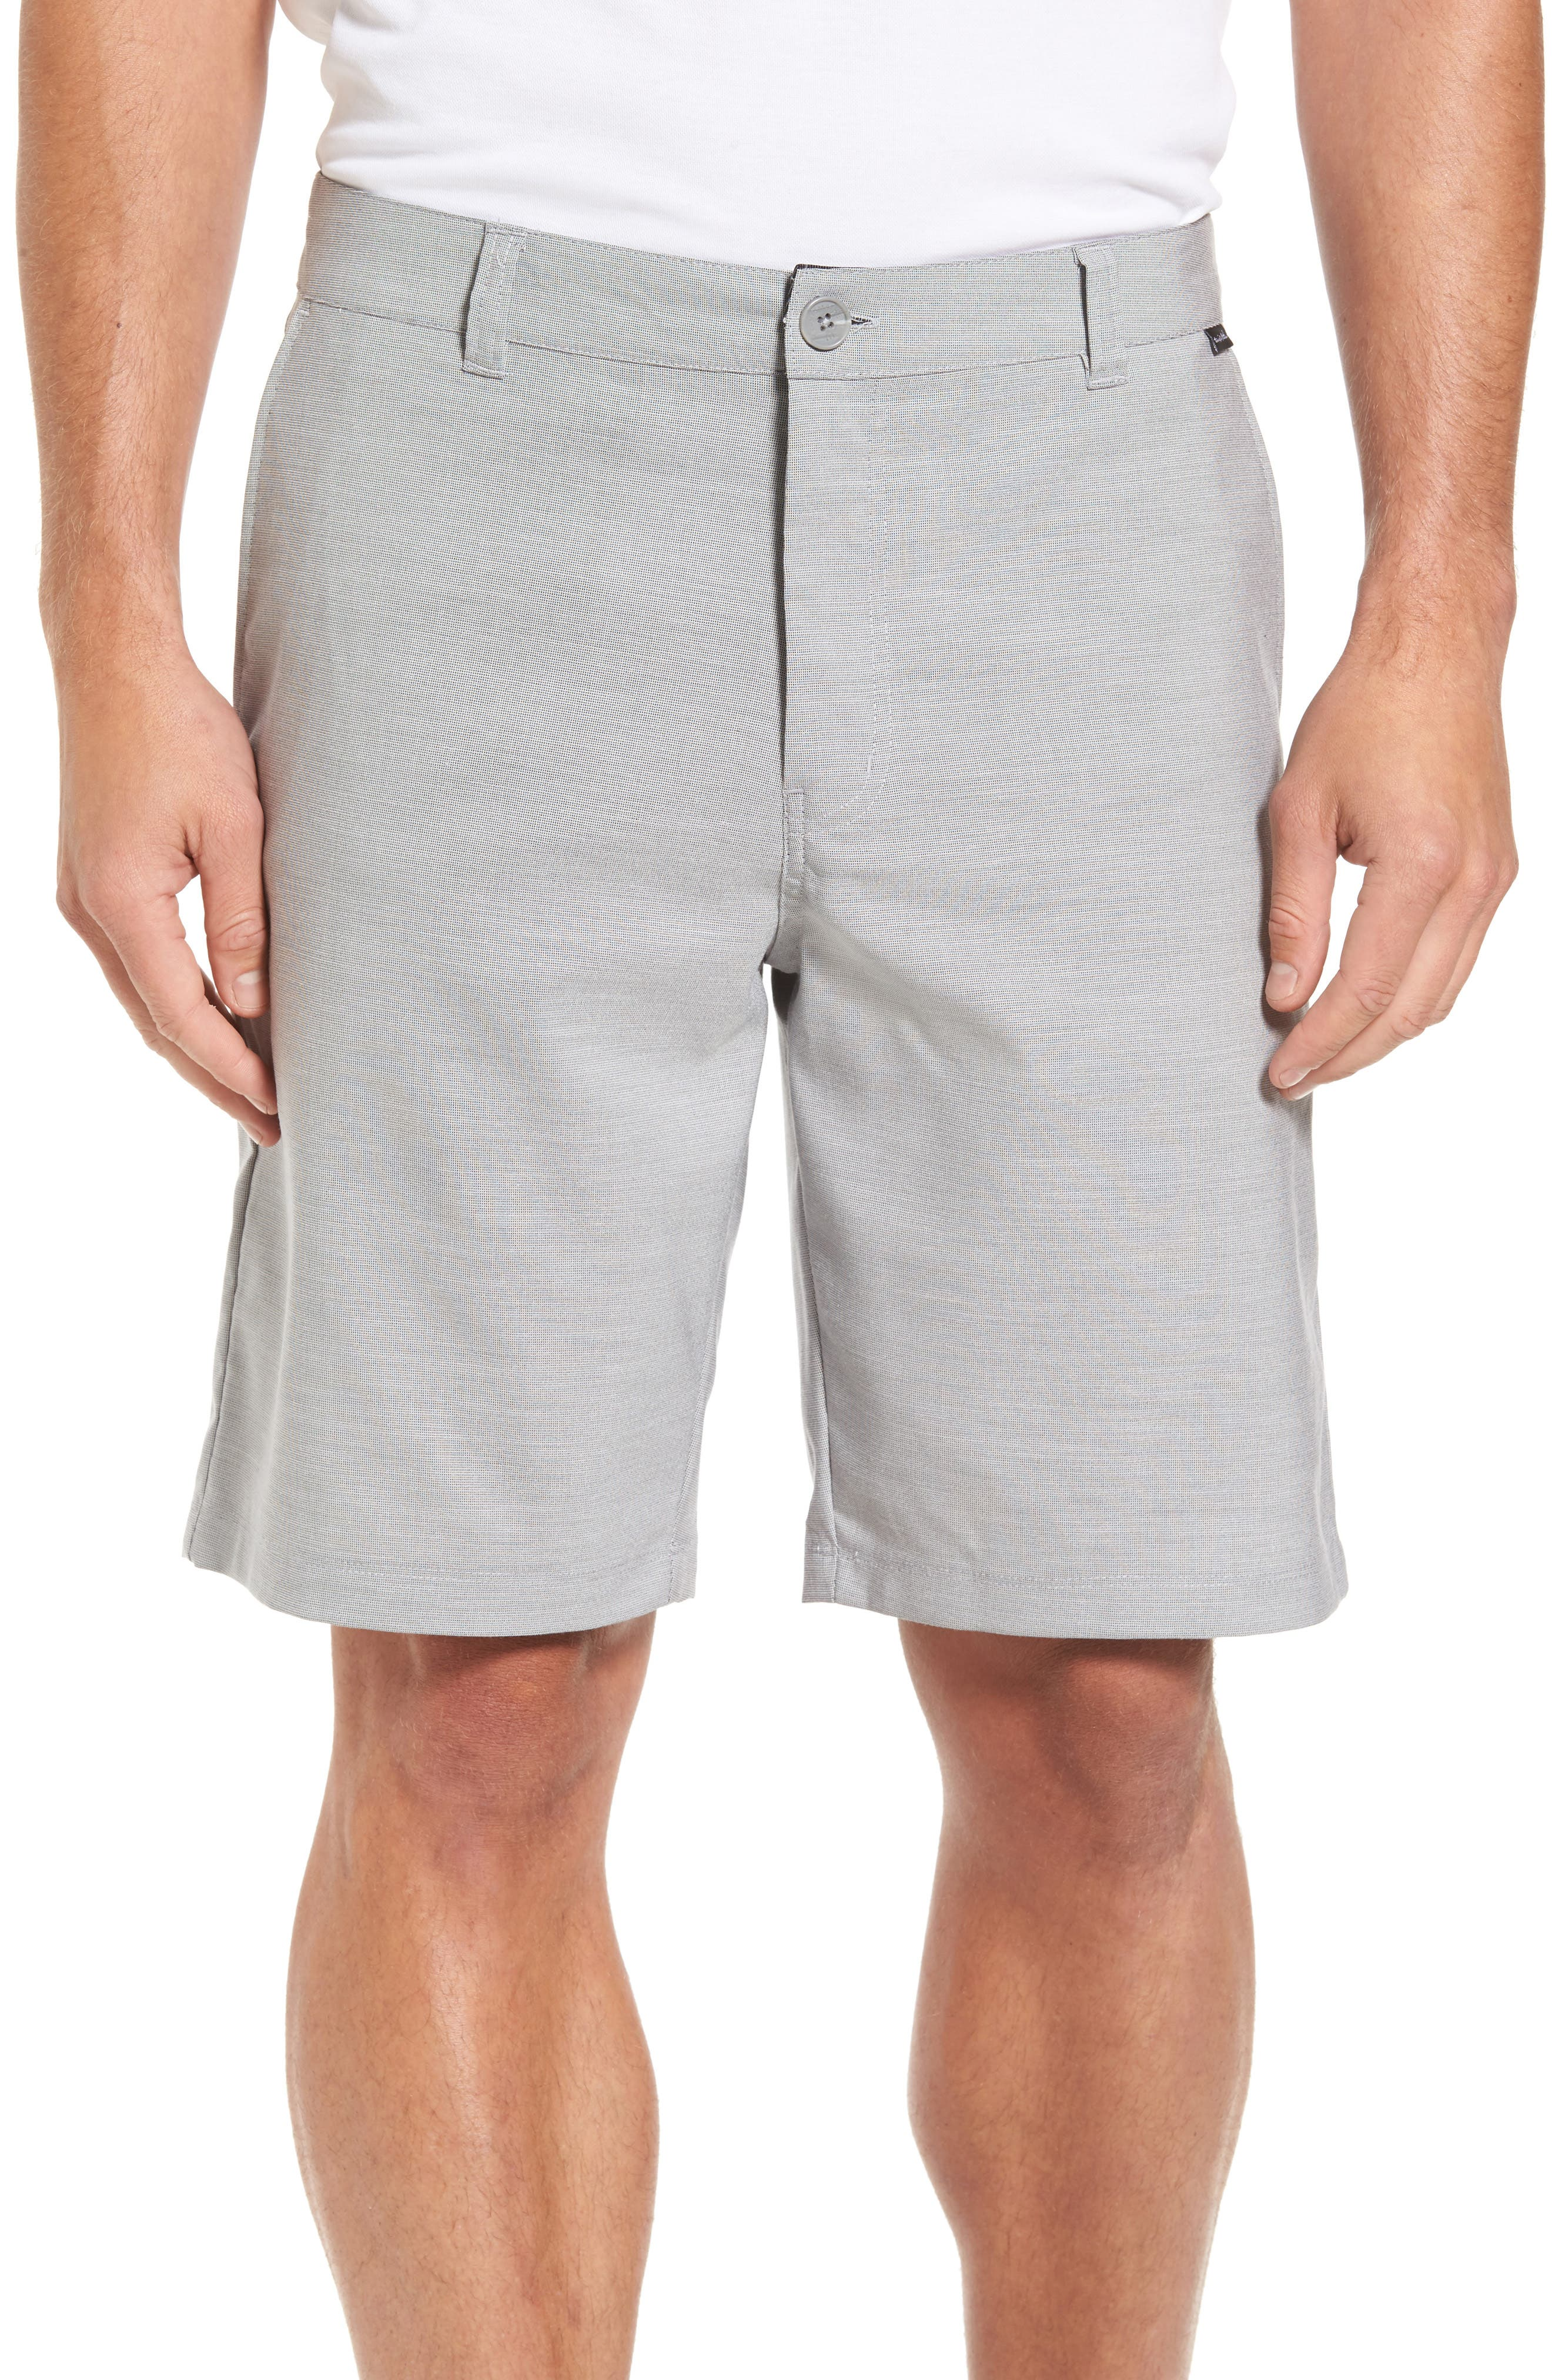 Fast Track Shorts,                         Main,                         color, 020